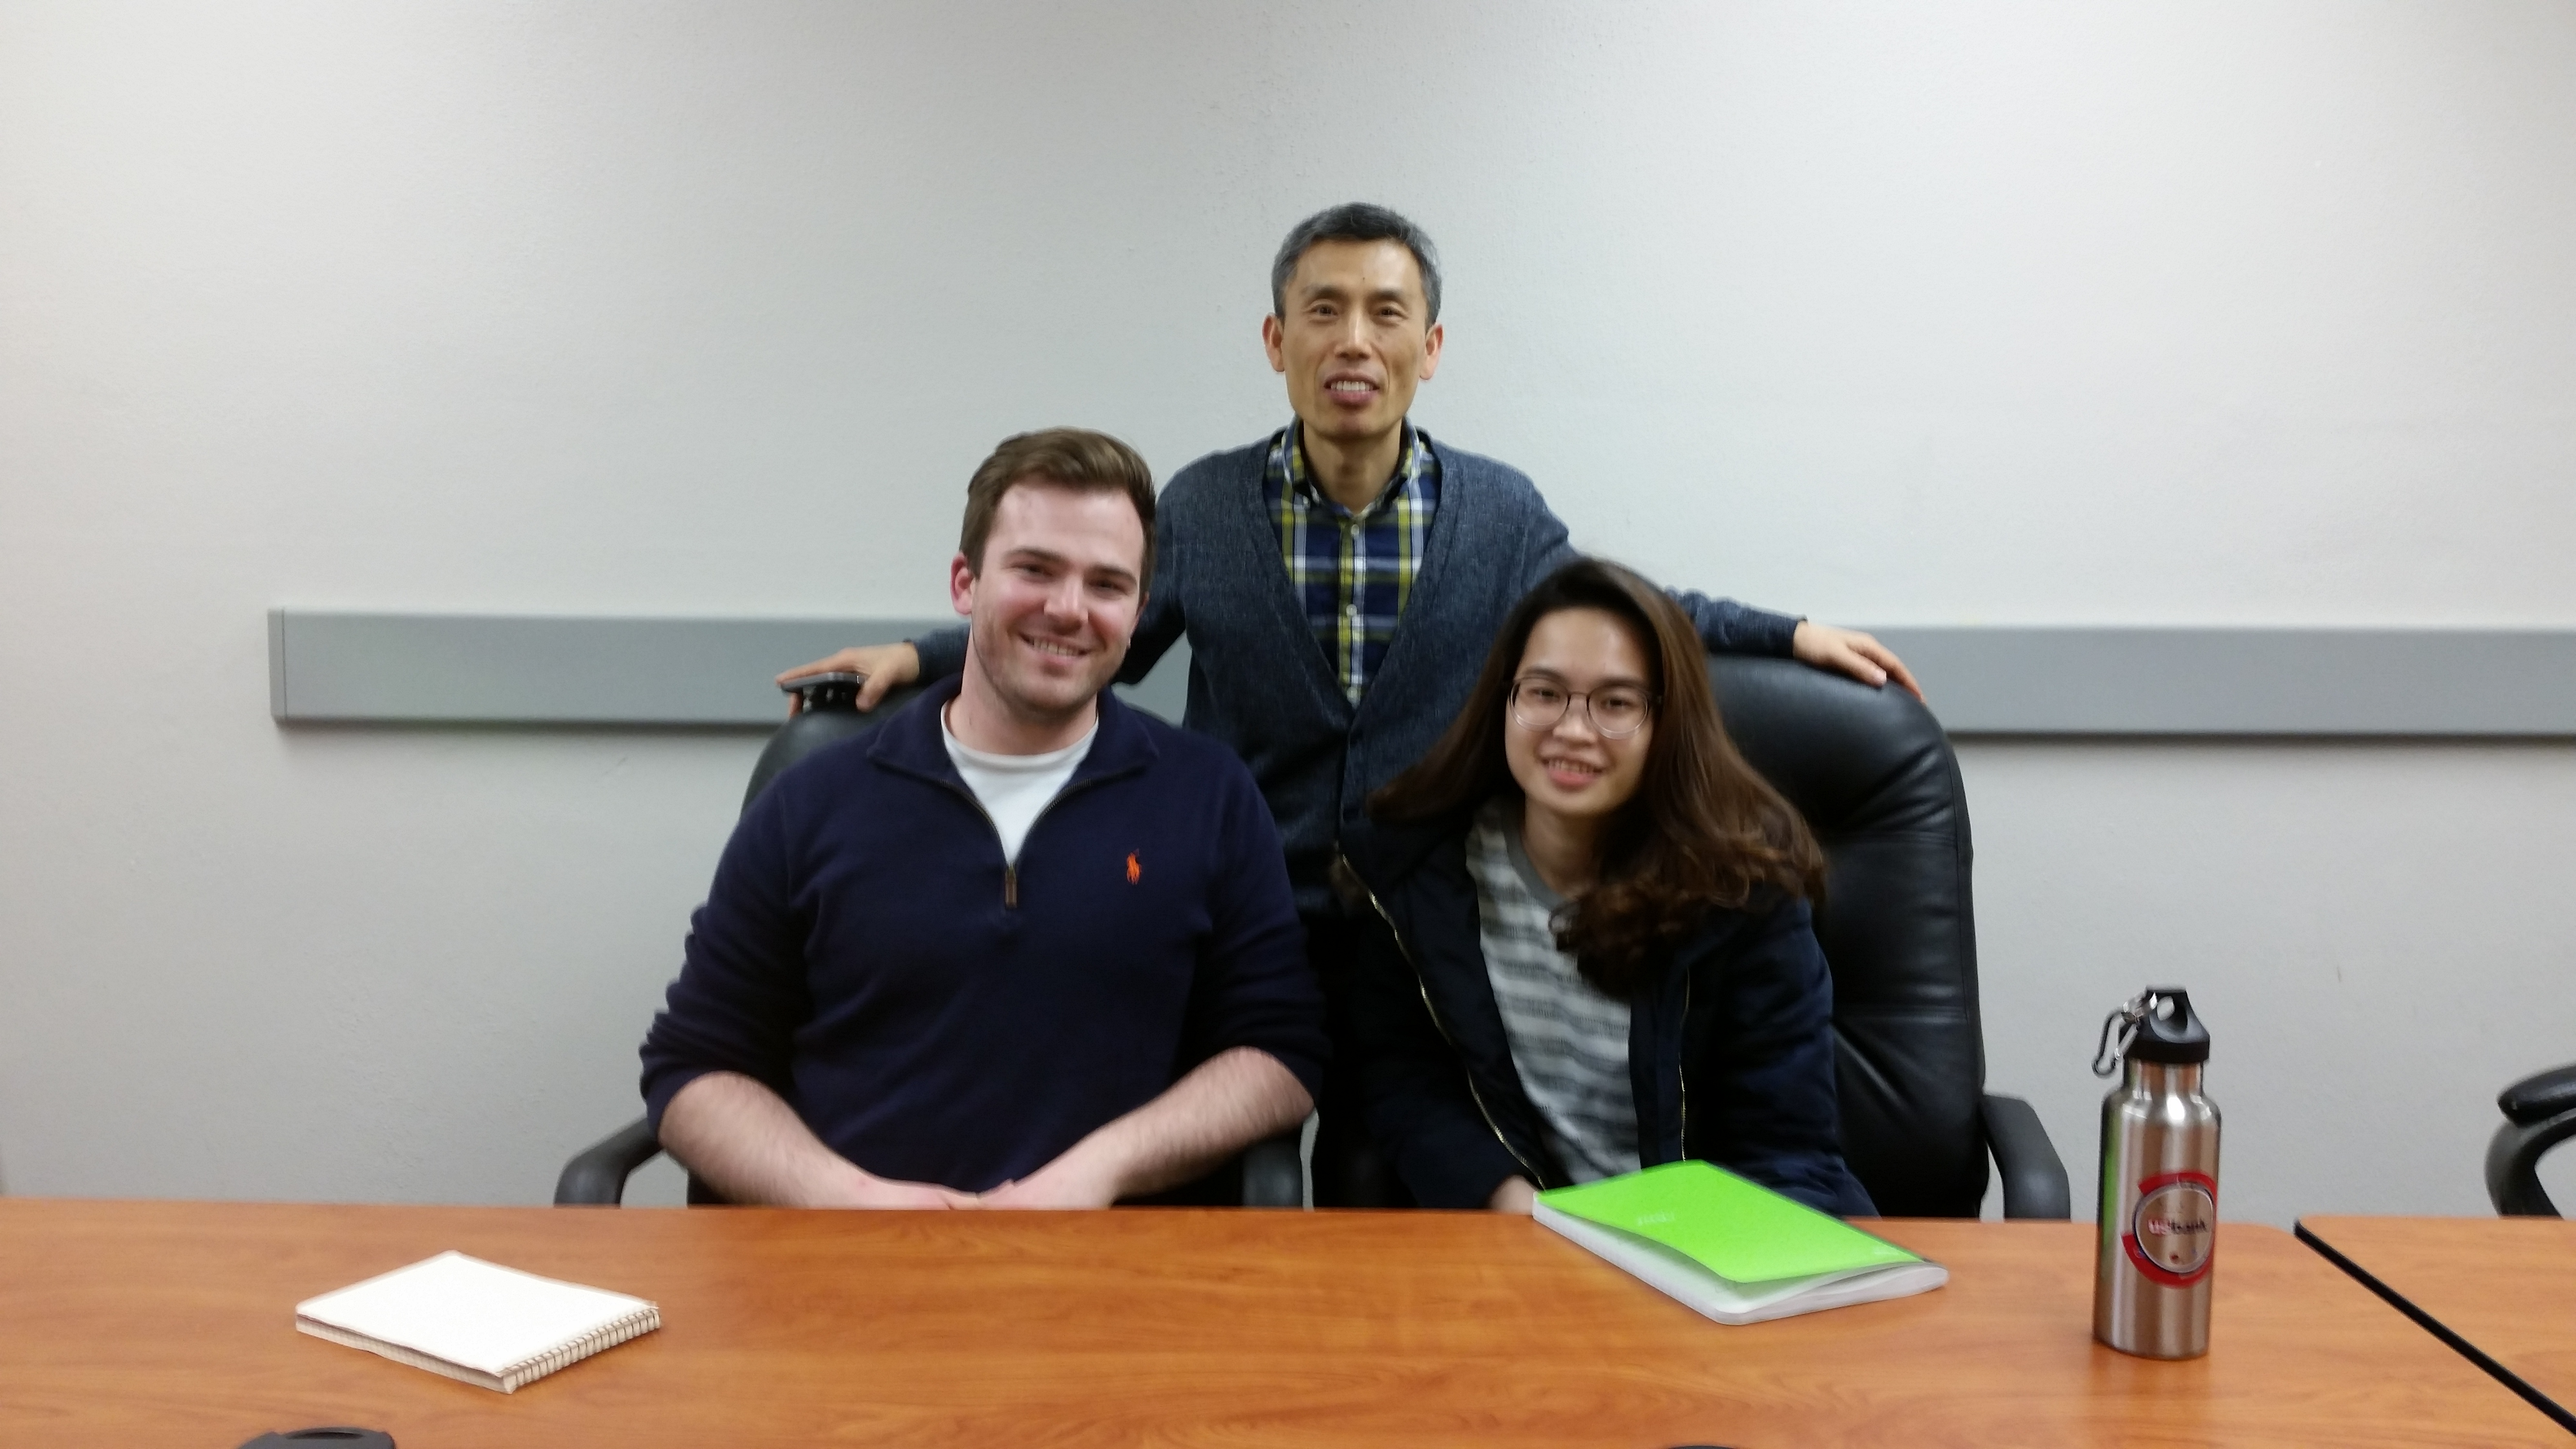 Greg Illy, Dr. Kyoungtae Kim, and Vy Nguyen pose for a photo